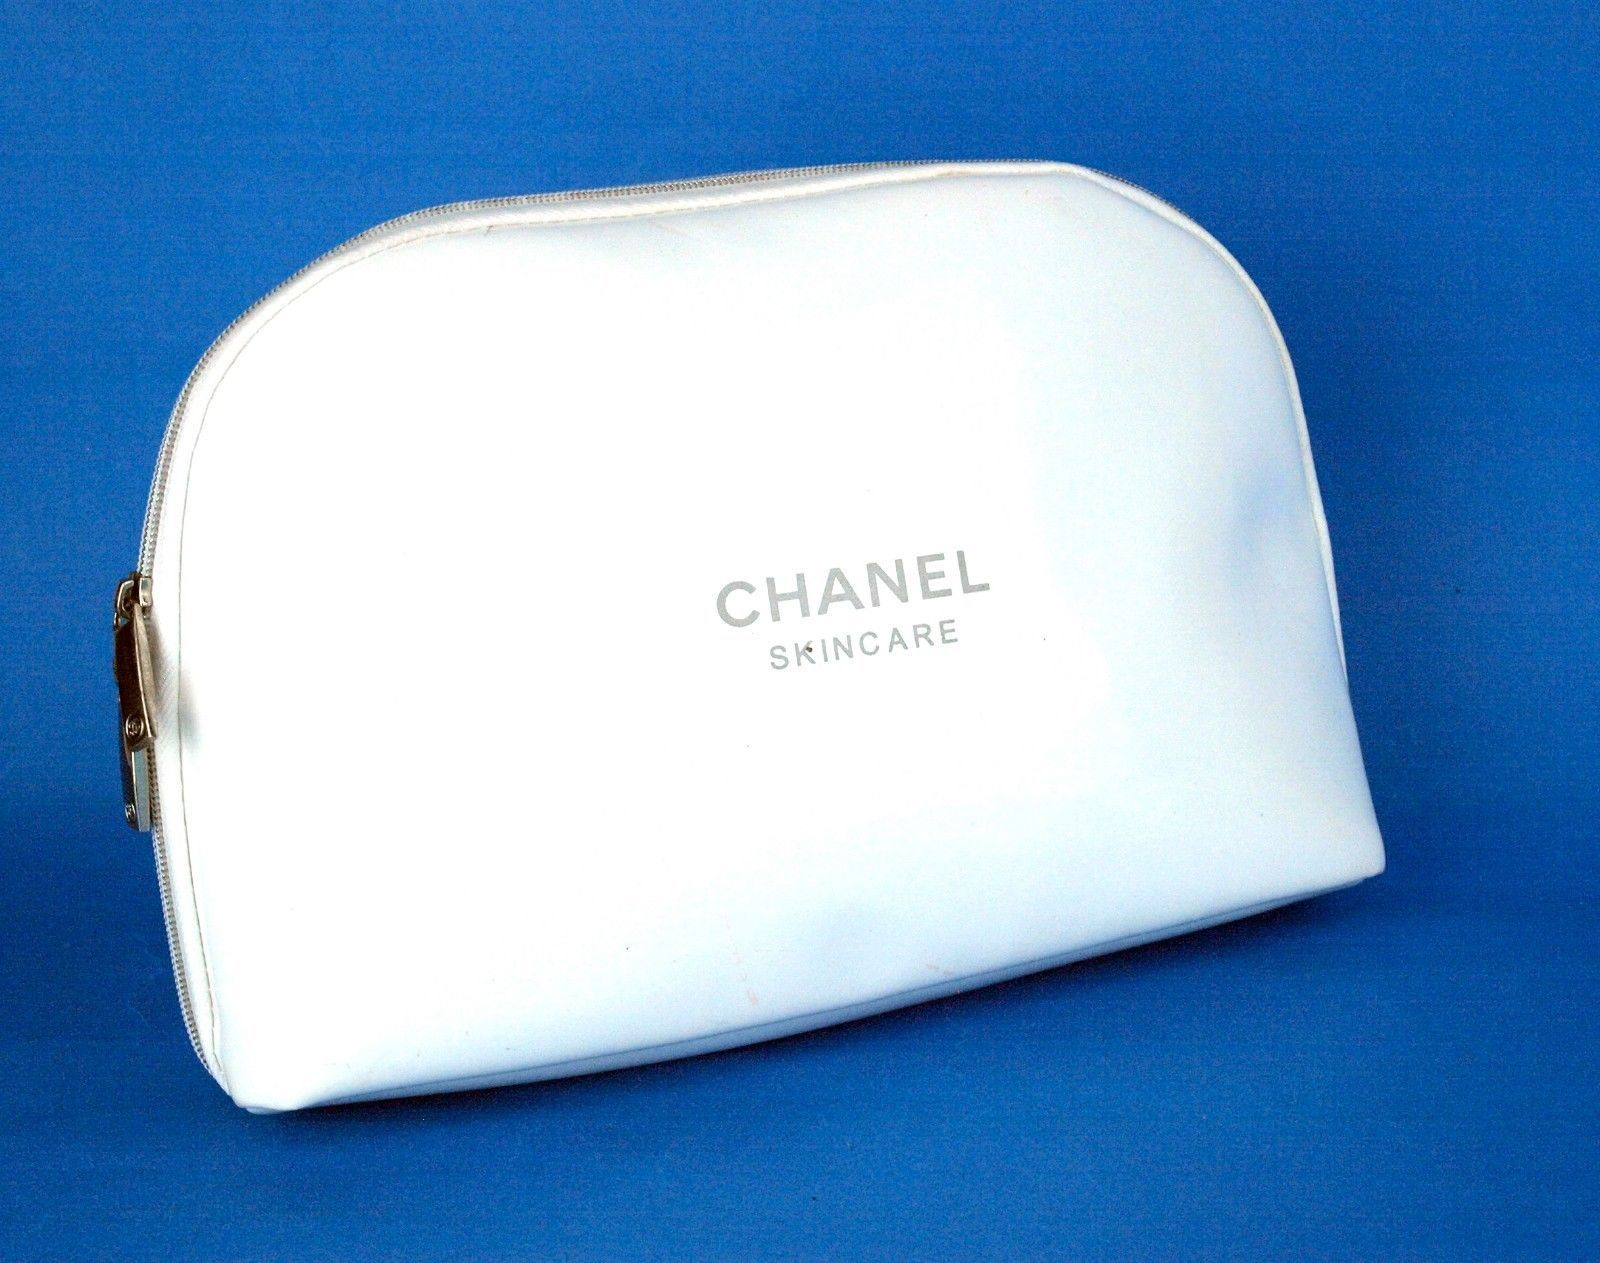 CHANEL Skincare White PVC Cosmetics Pouch Accessories Bag Purse Novalty Item